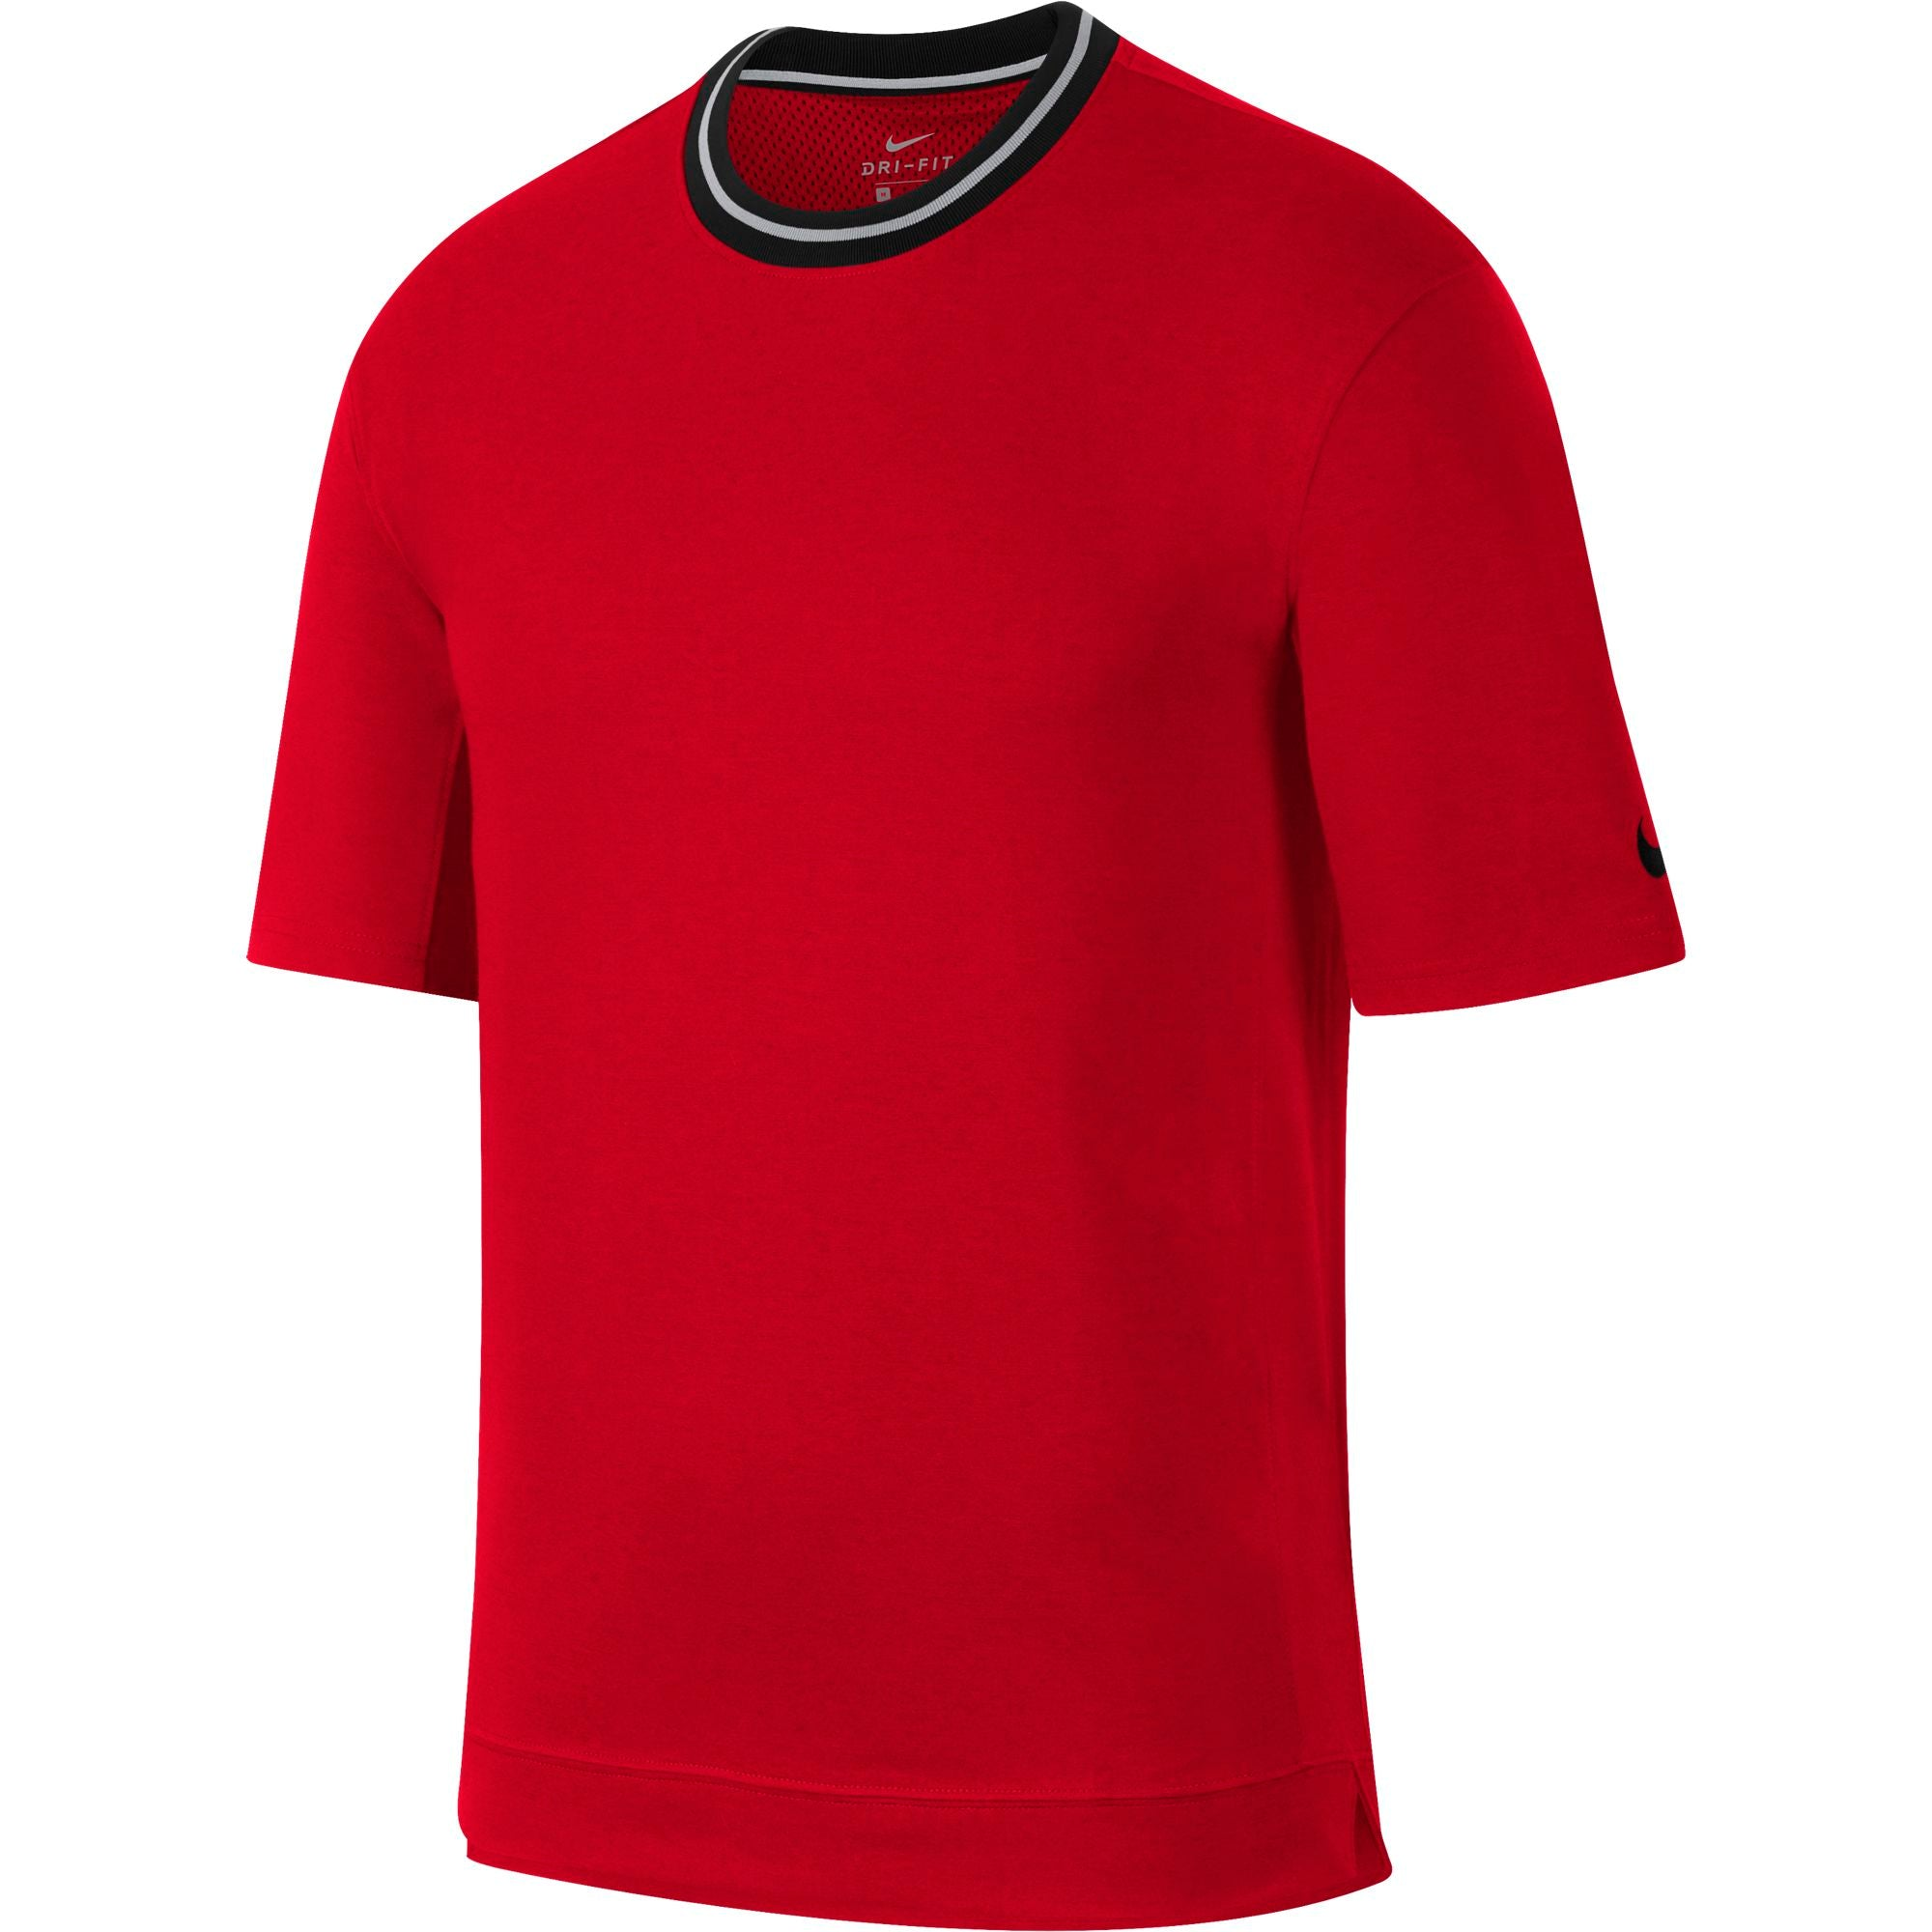 Nike Basketball Dry Fit Short Sleeved Top - NK-AJ3538-657